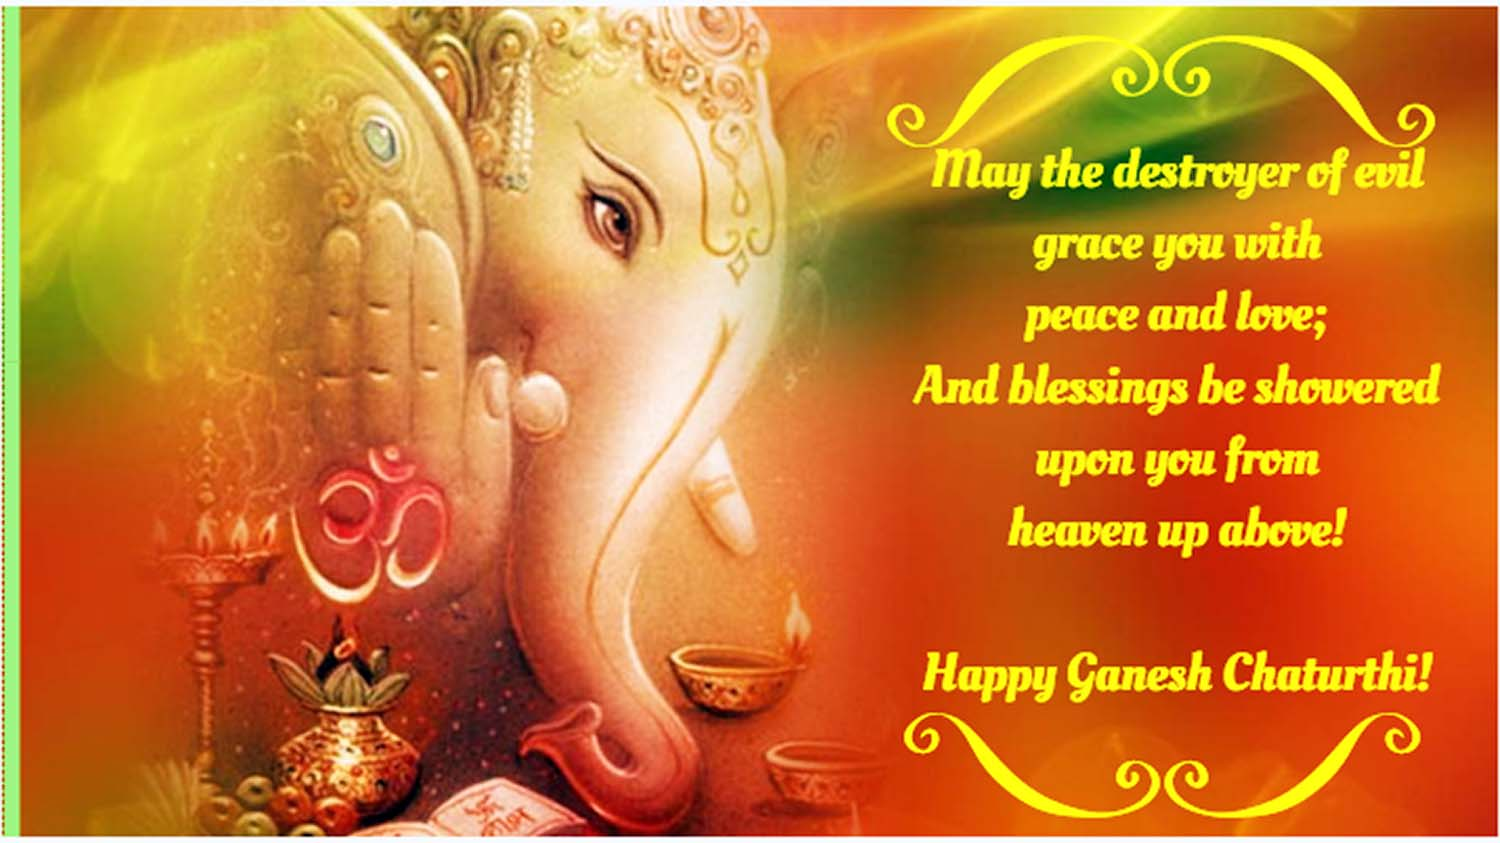 Ganesh Chaturthi greeting message